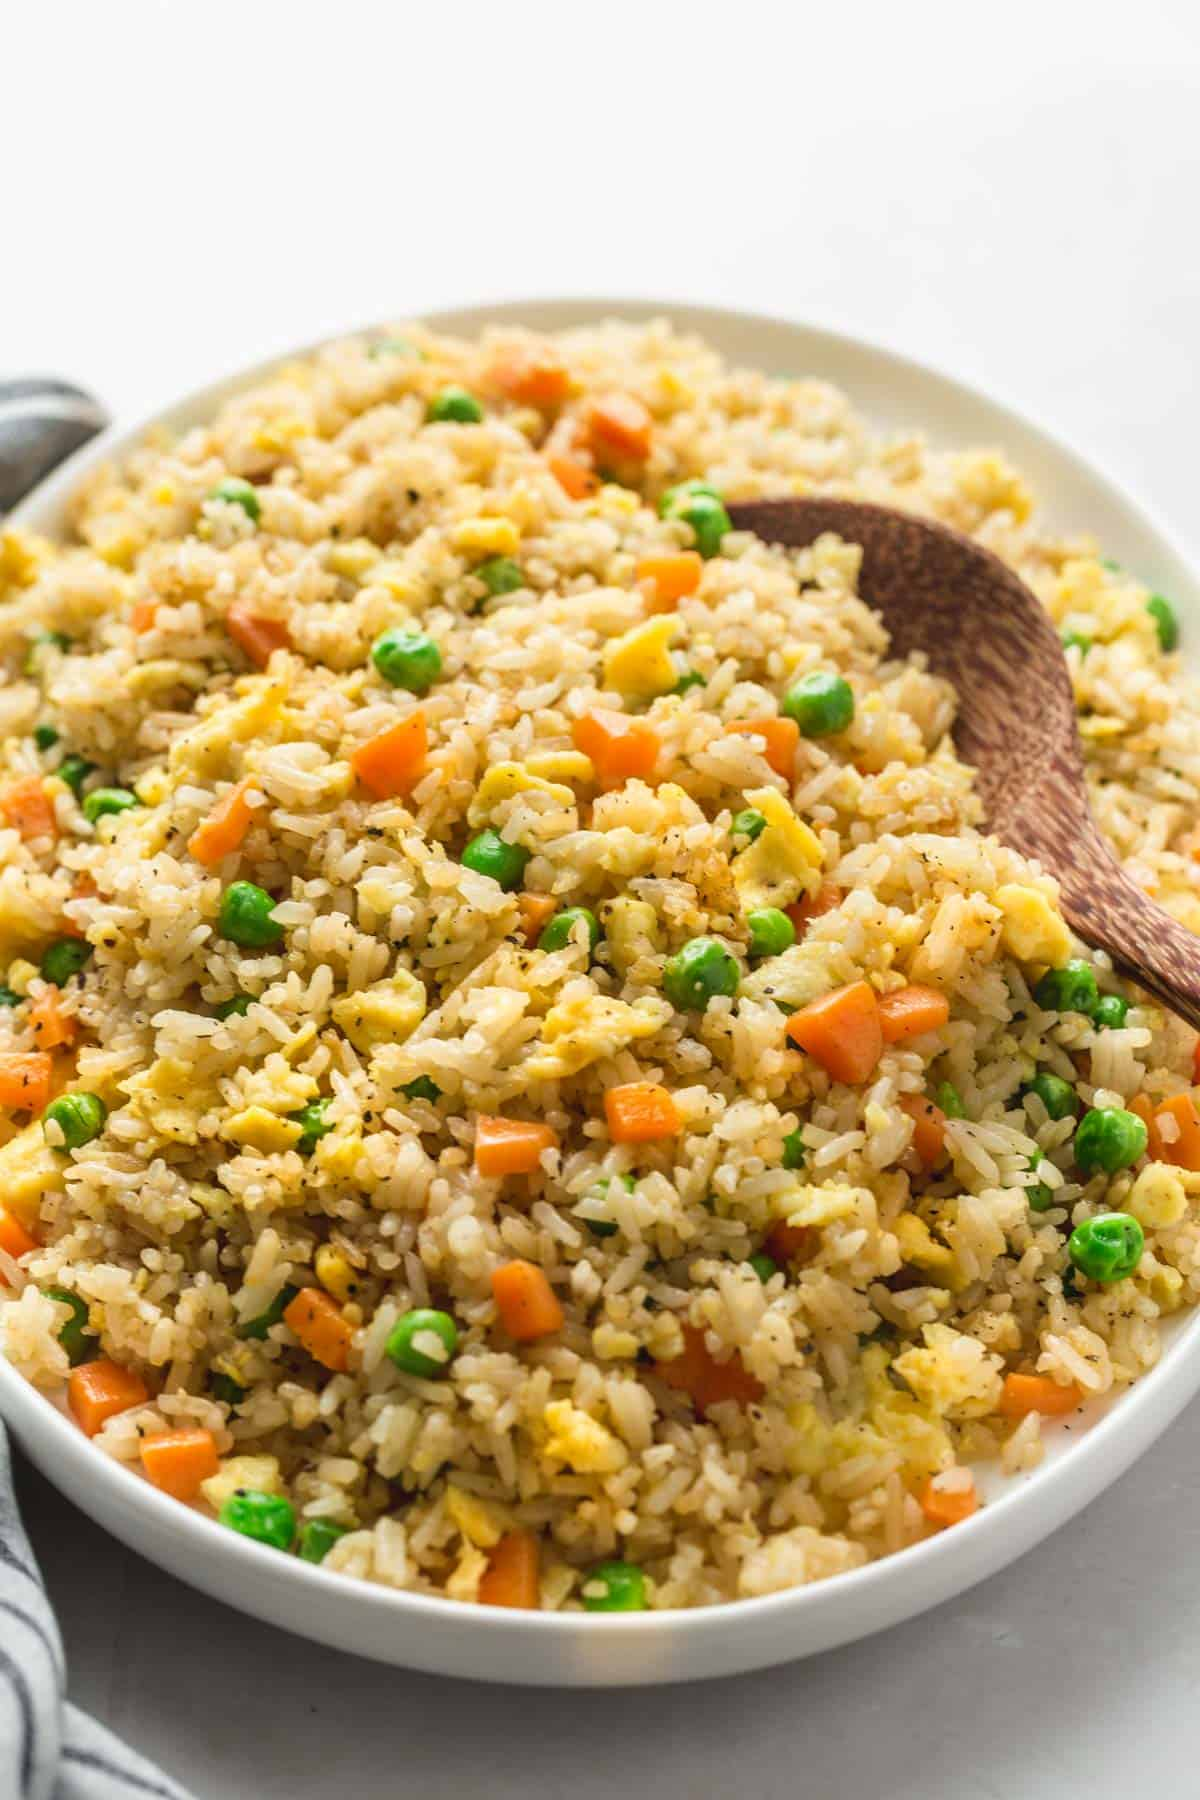 A large plate with fried rice served in it, and a wooden serving spoon